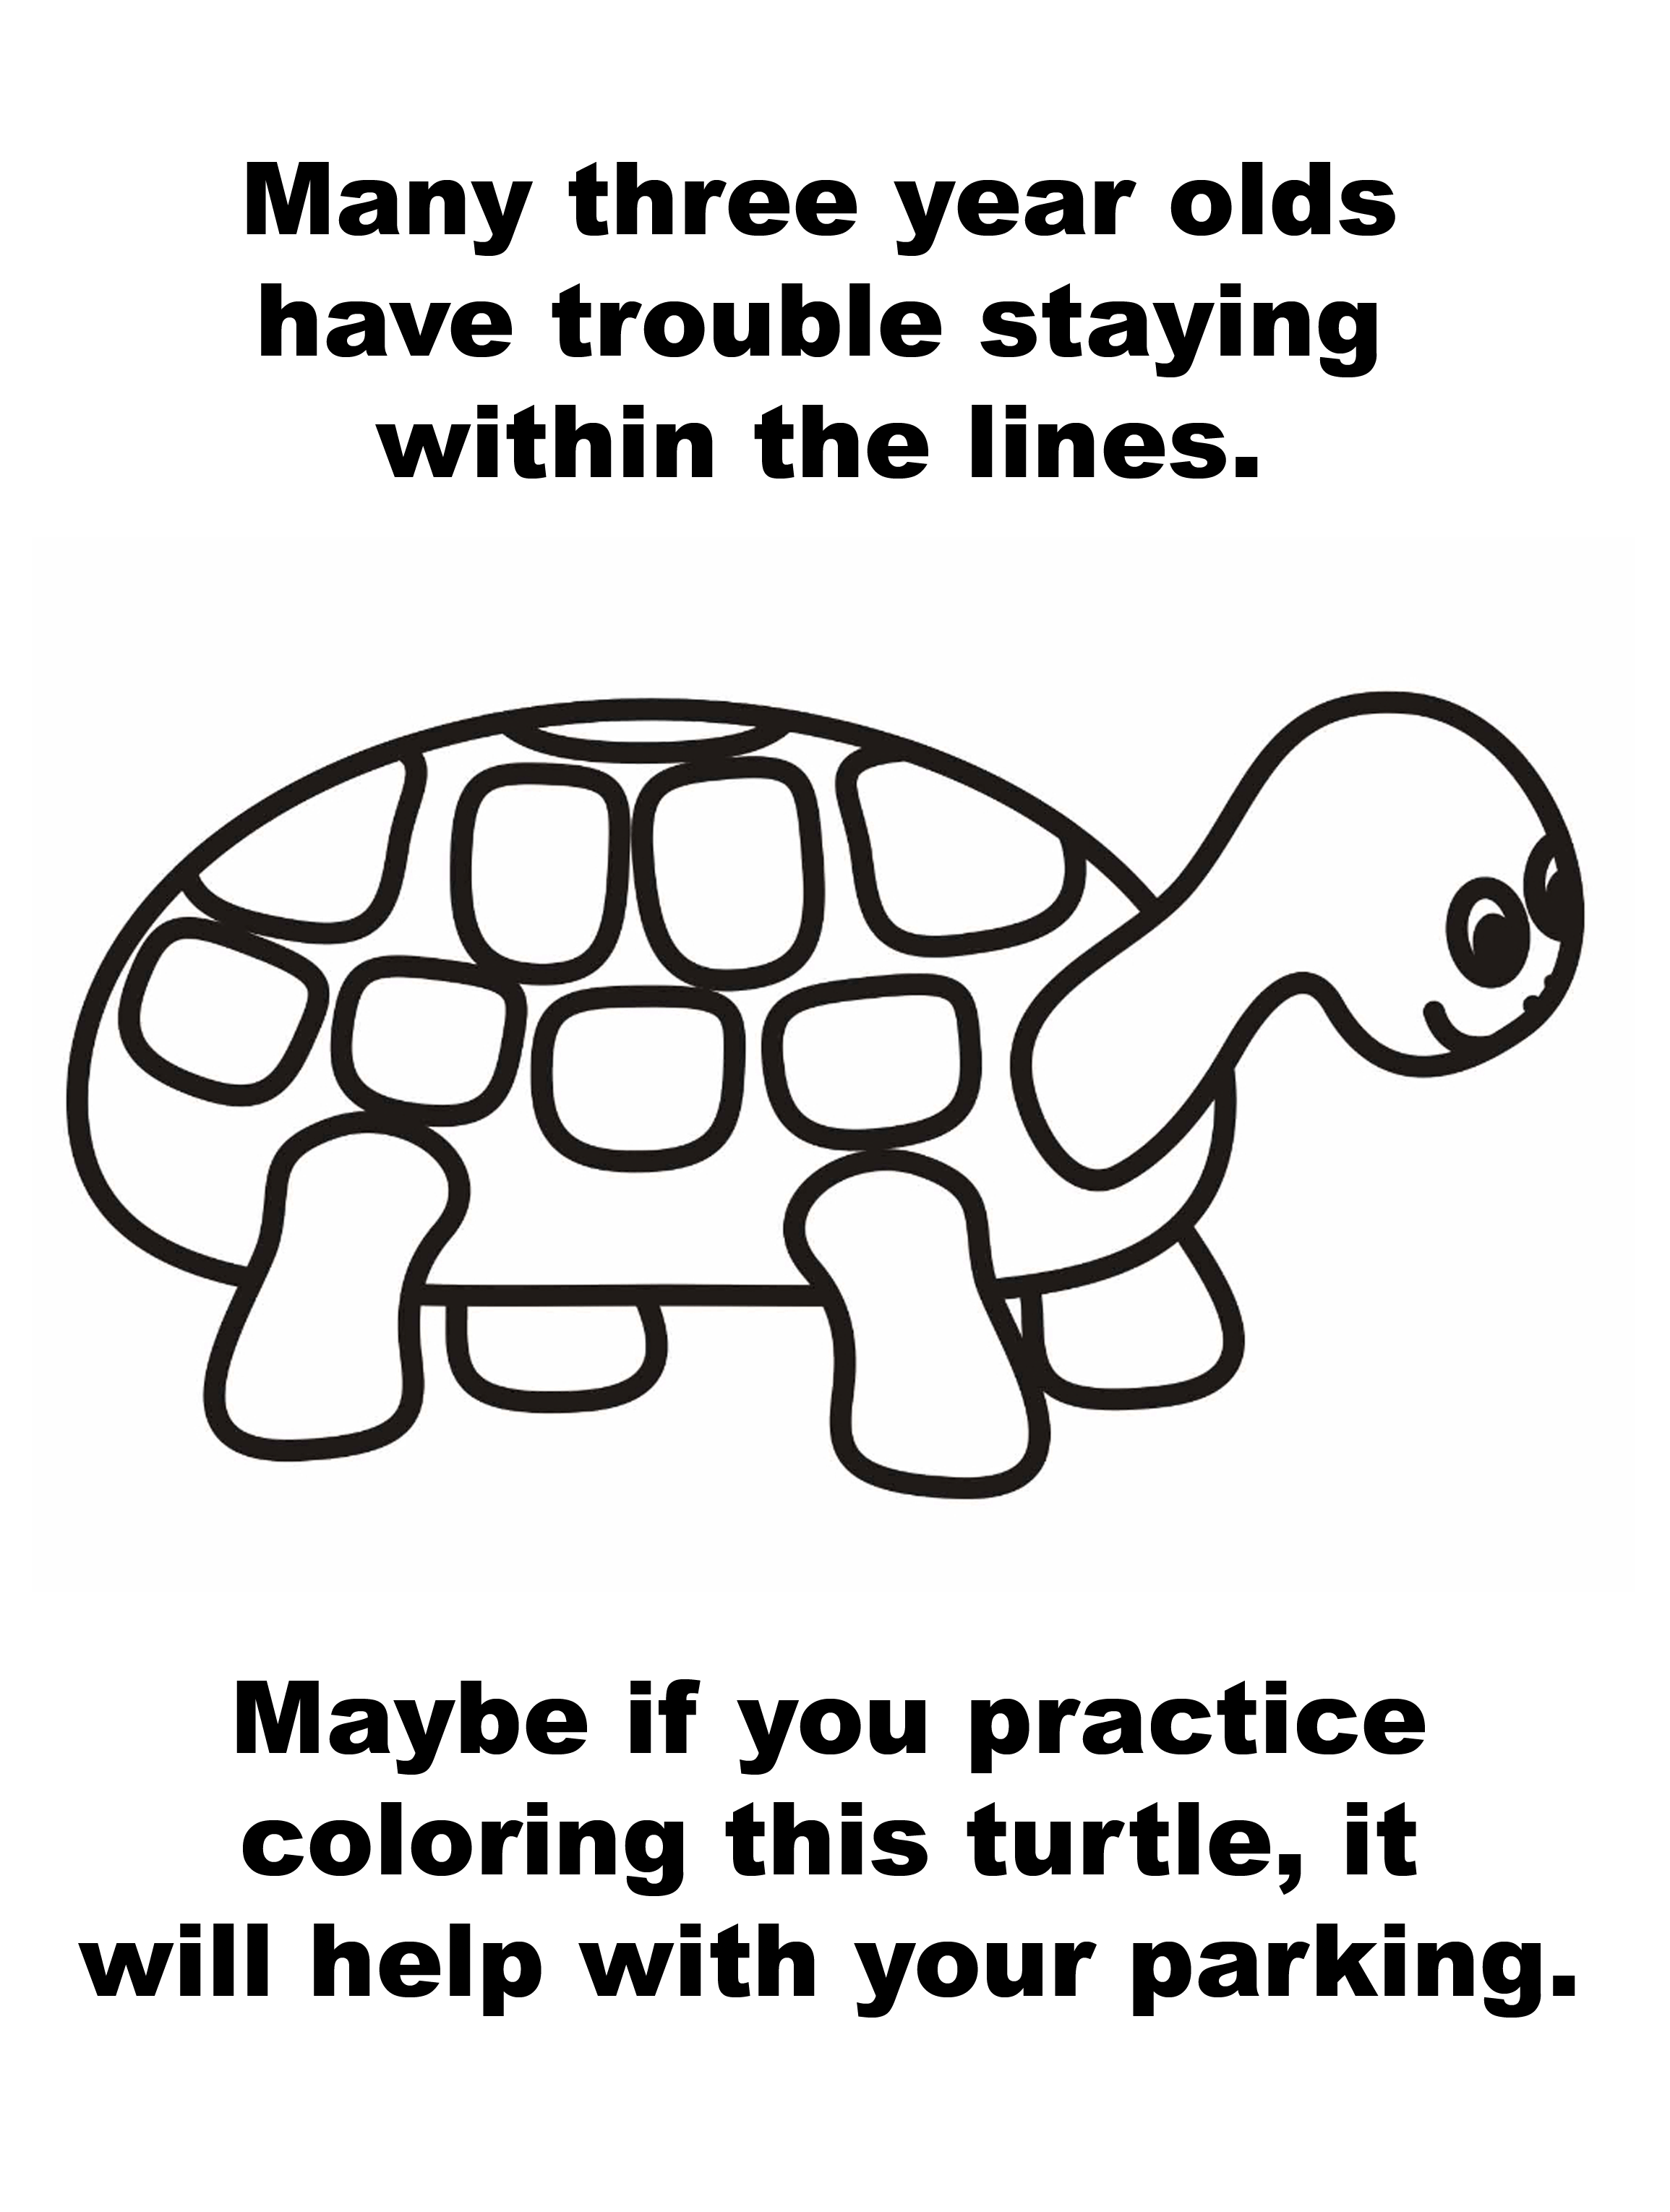 Free coloring pages for 4 year olds - Cars Coloring Pages For 3 Yr Olds Turtle Parking Coloring Google Search